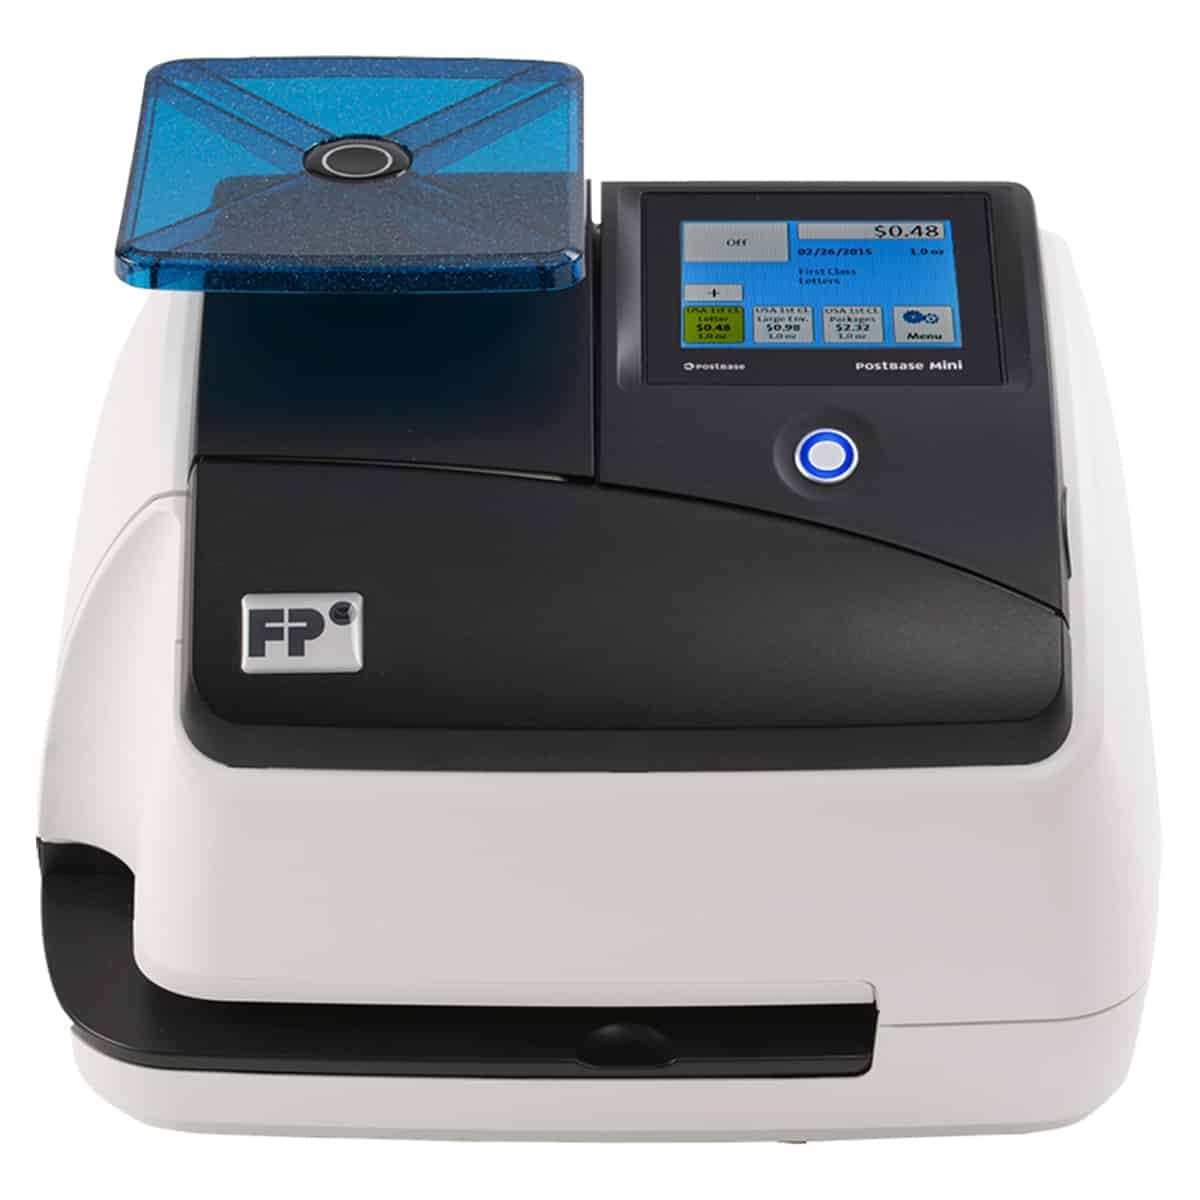 FP-solutions-postbase-mini-postage-meter